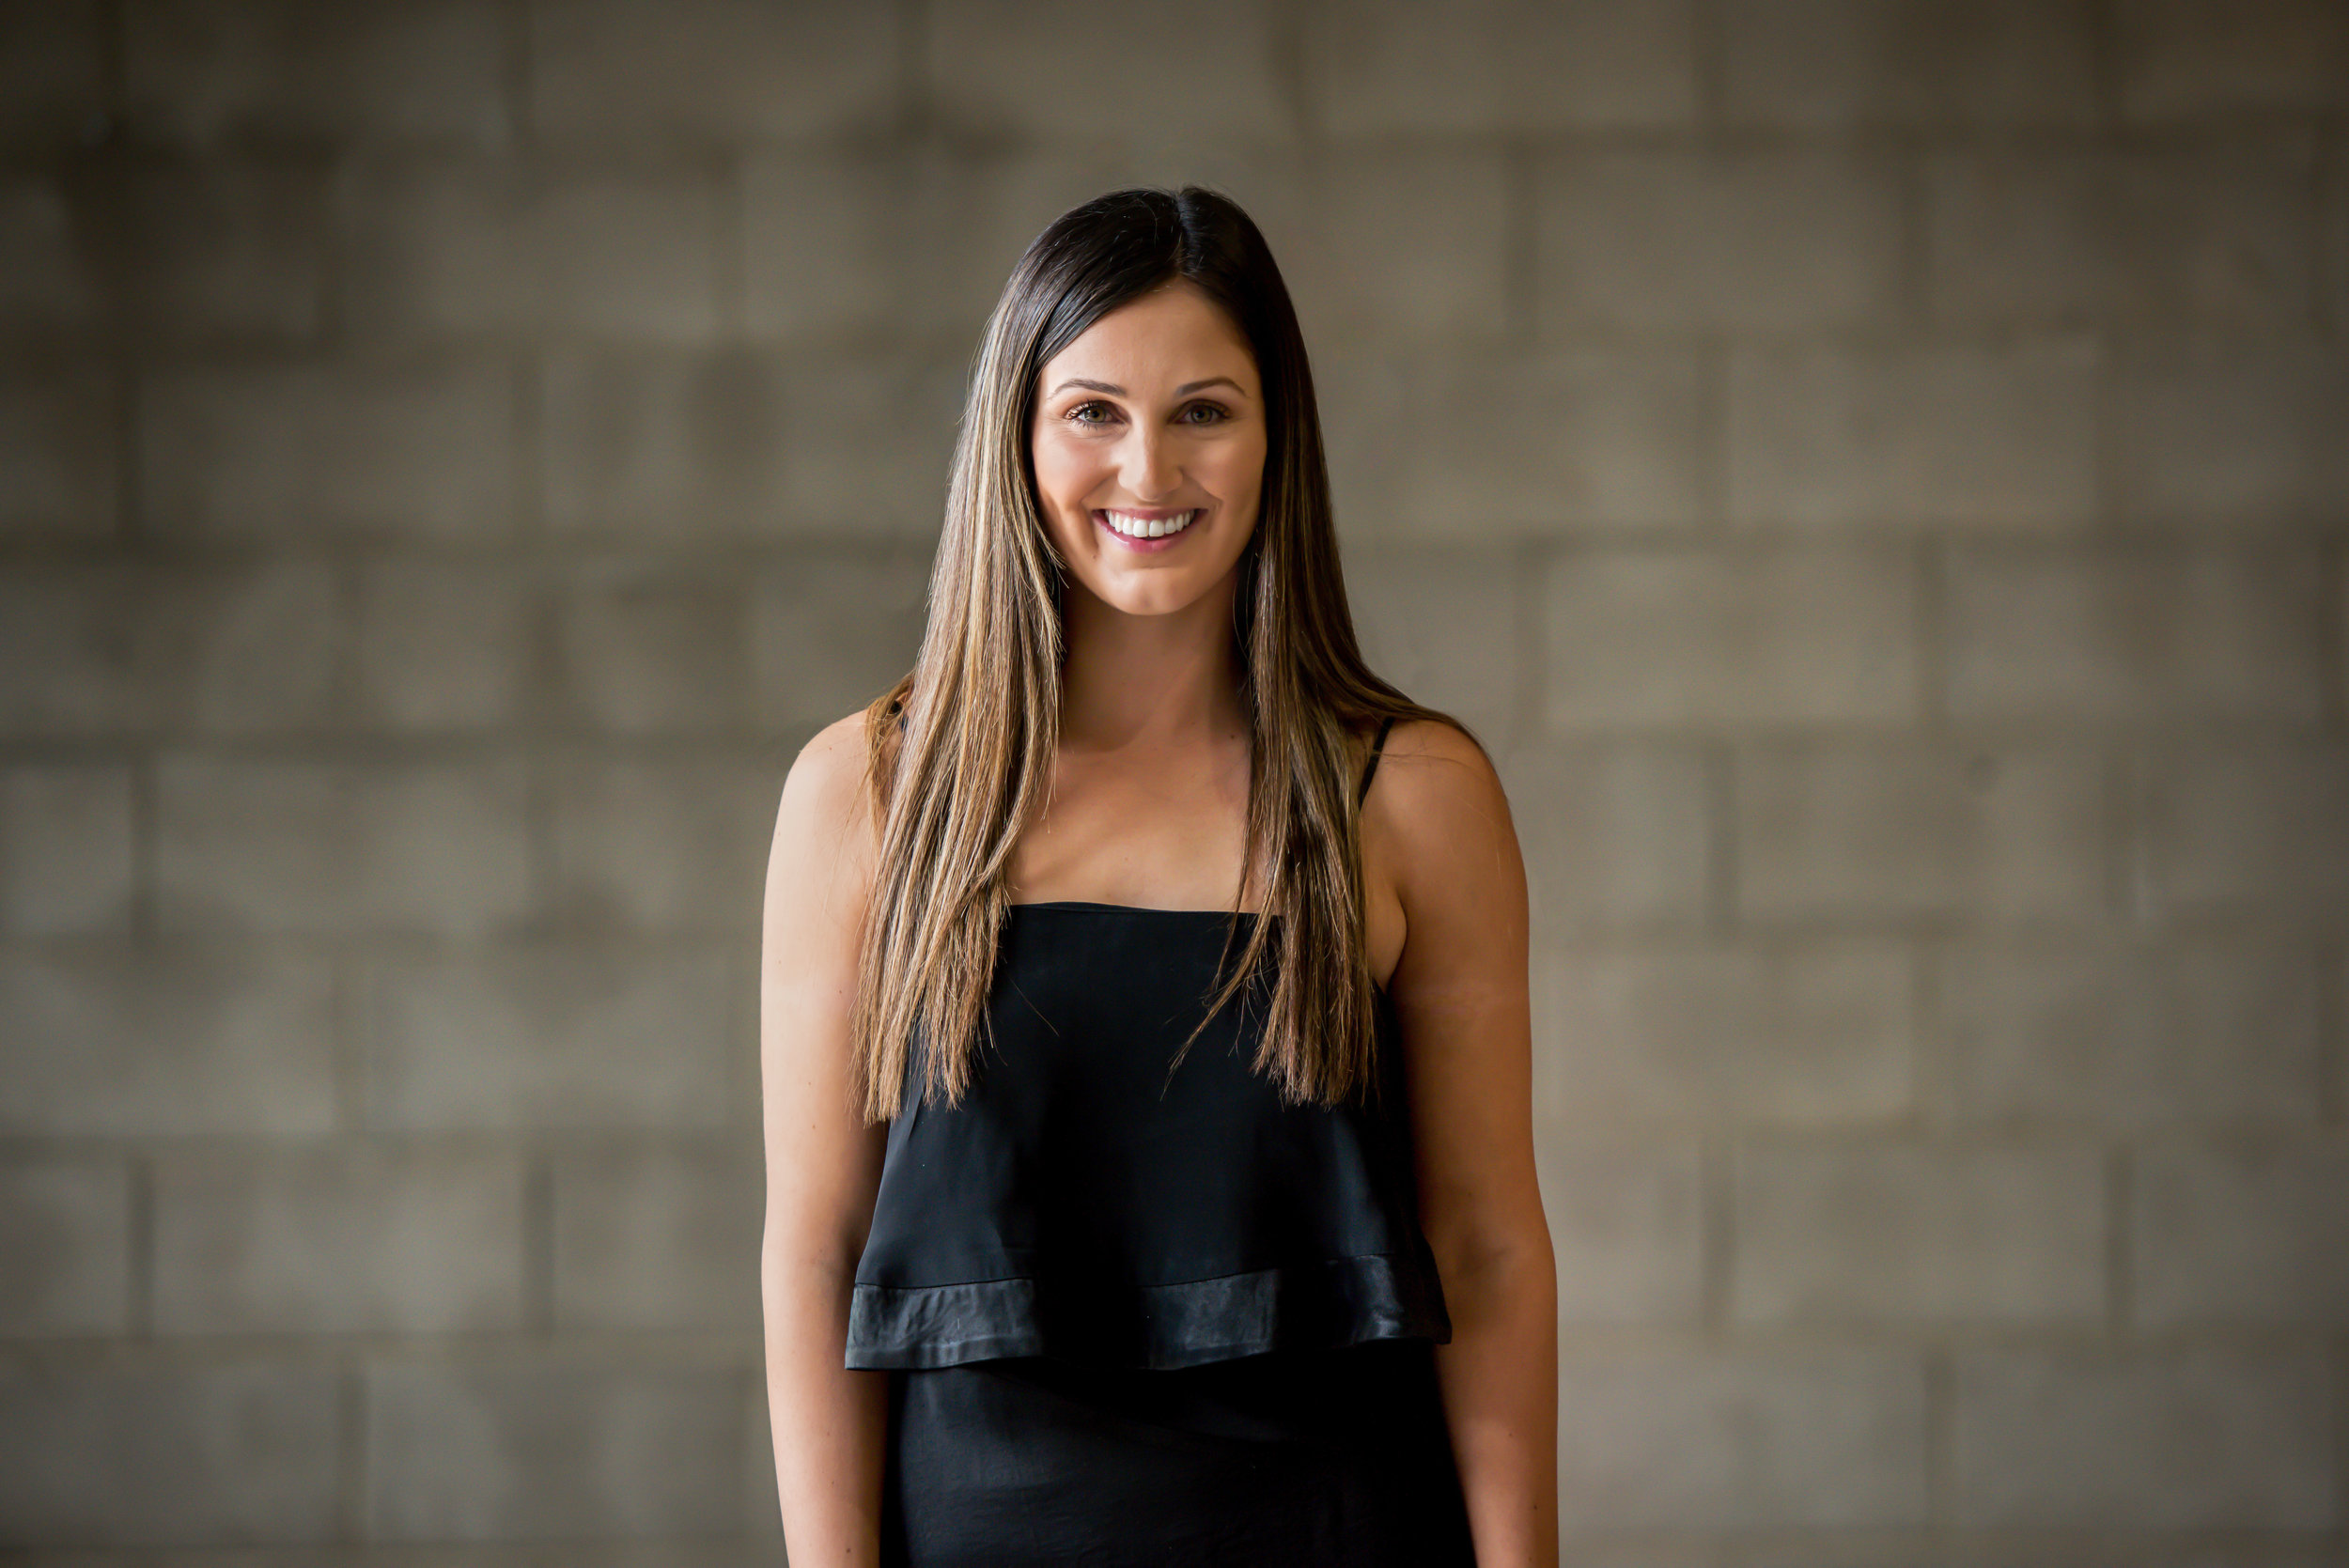 gabby sbrissa   senior property stylist  When I'm not styling up a storm, you'll find me: down at Henley Square with the girls, most likely with a mojito in my hand!  Something about me that people are always surprised to learn: I'm a good kick of the footy!